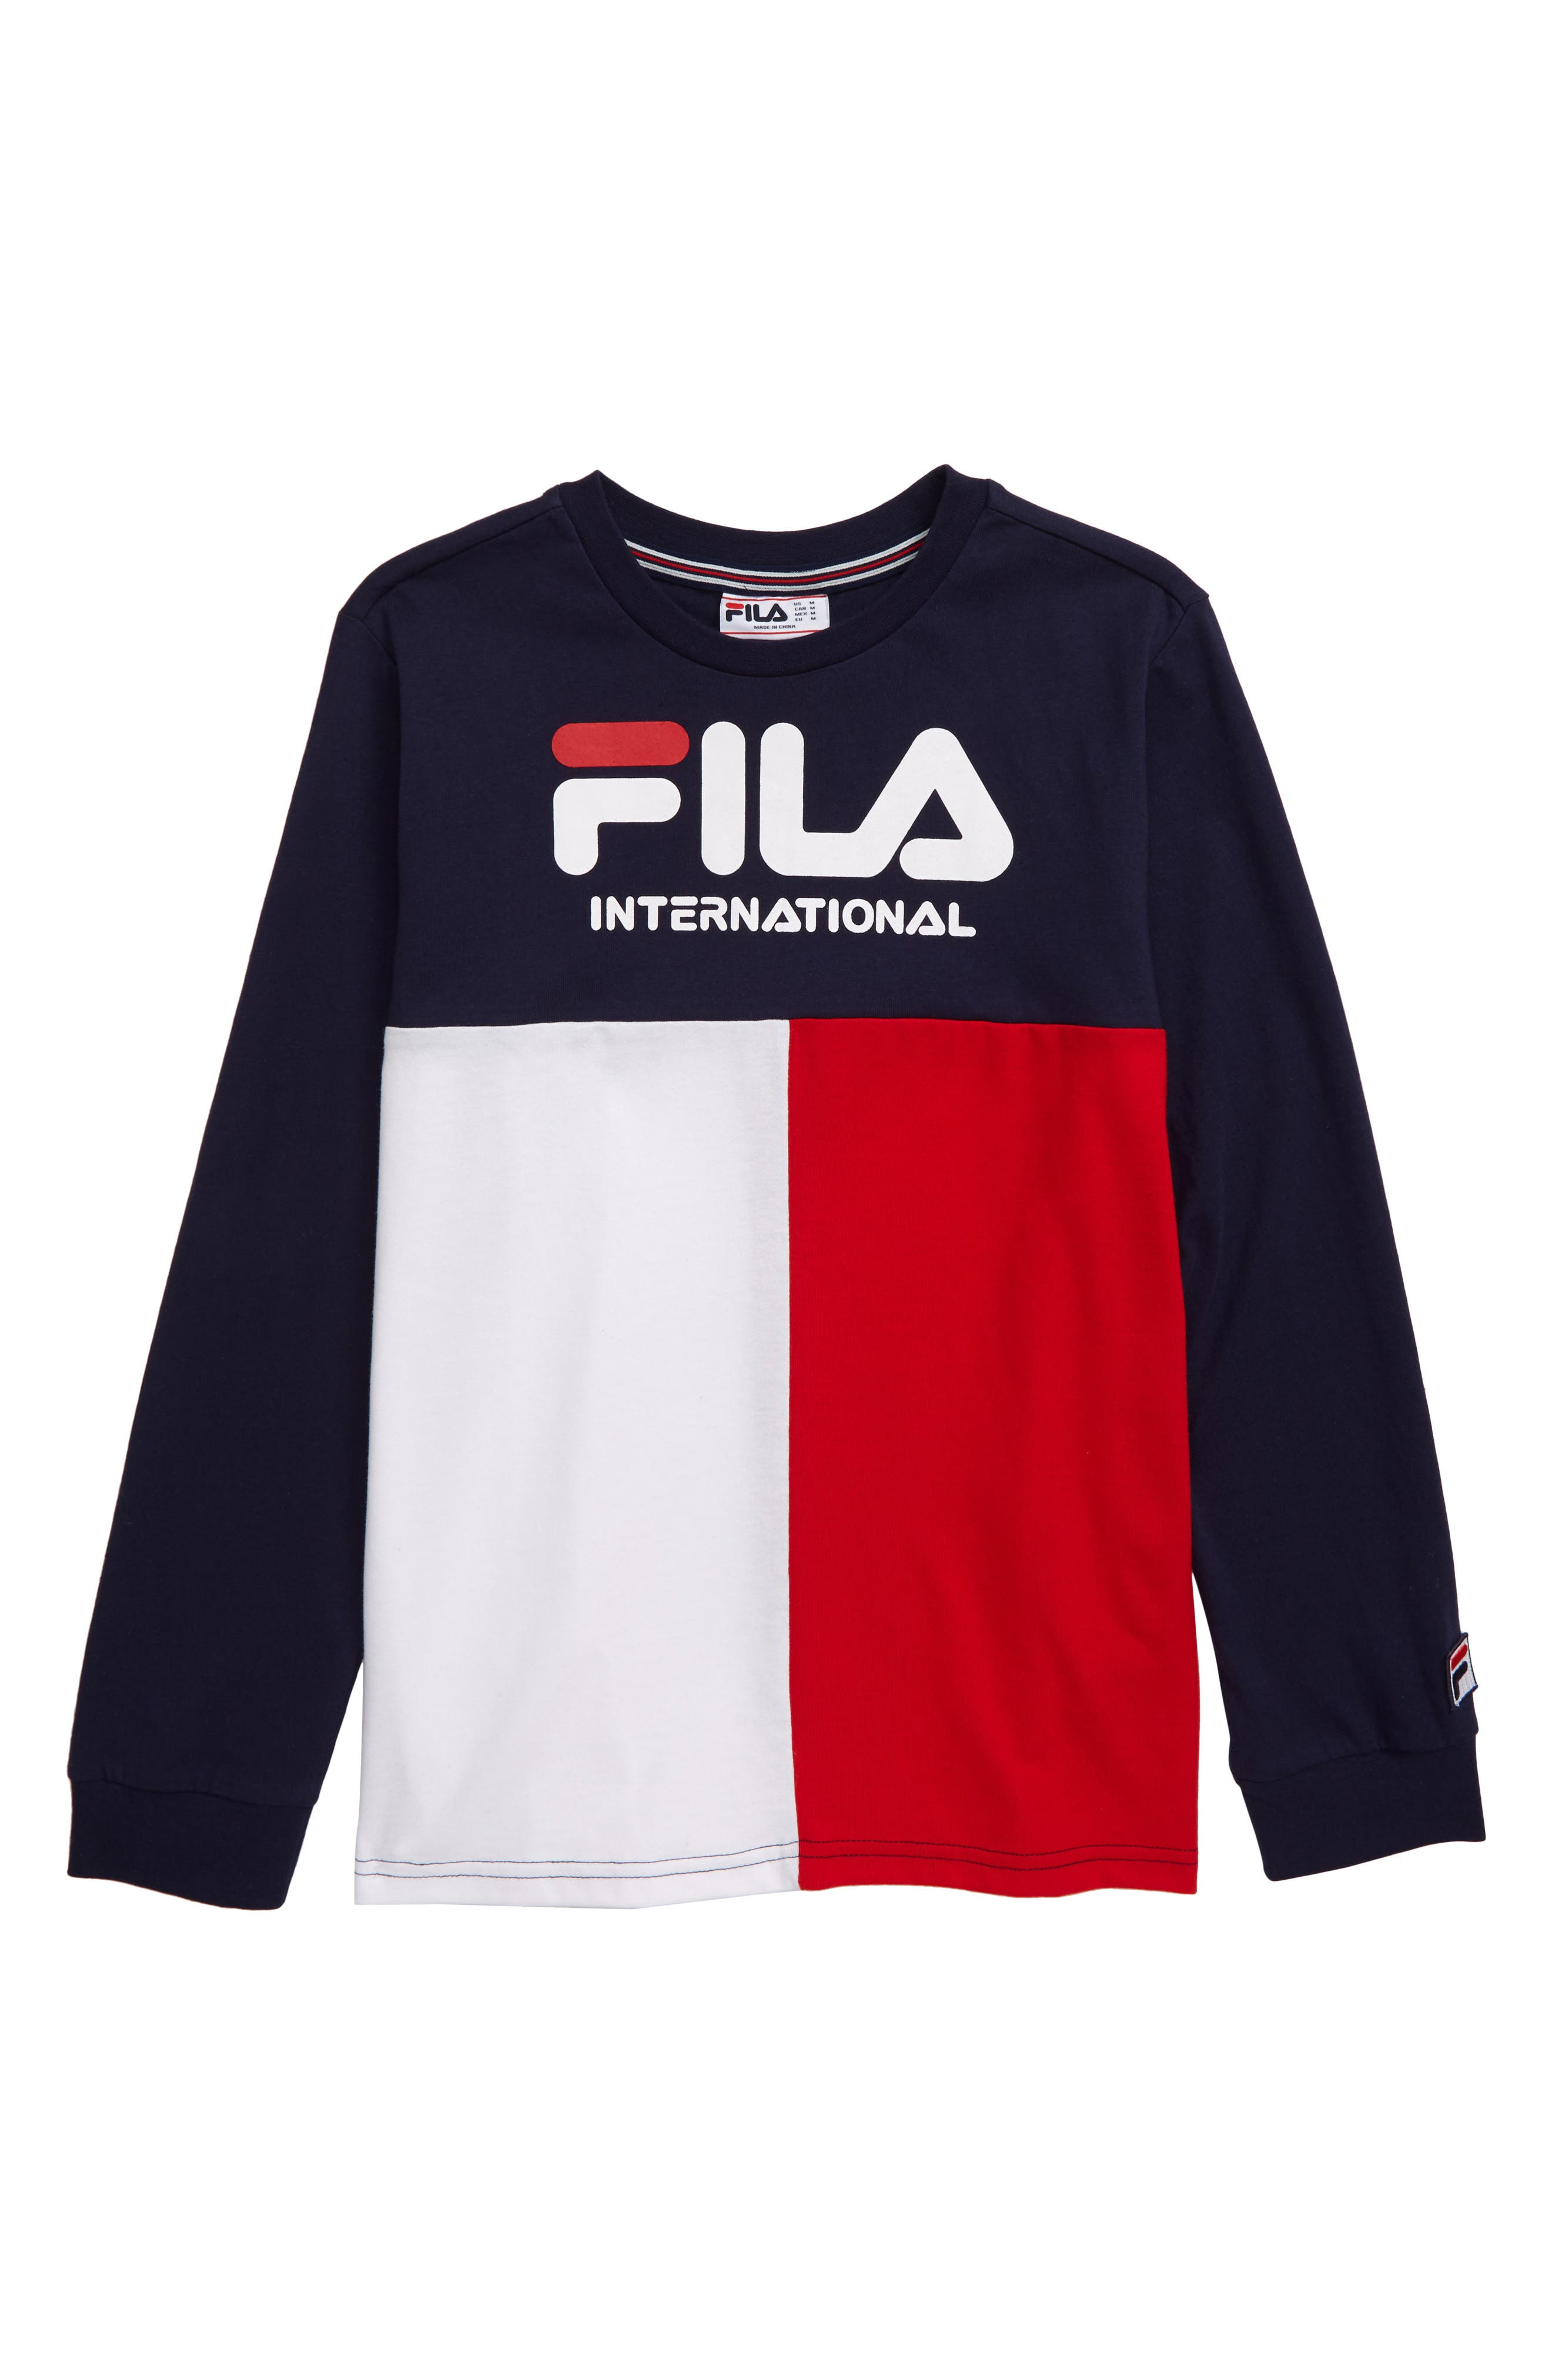 Slide View: 3: FILA Velour Pinstriped Logo T Shirt | FILAS